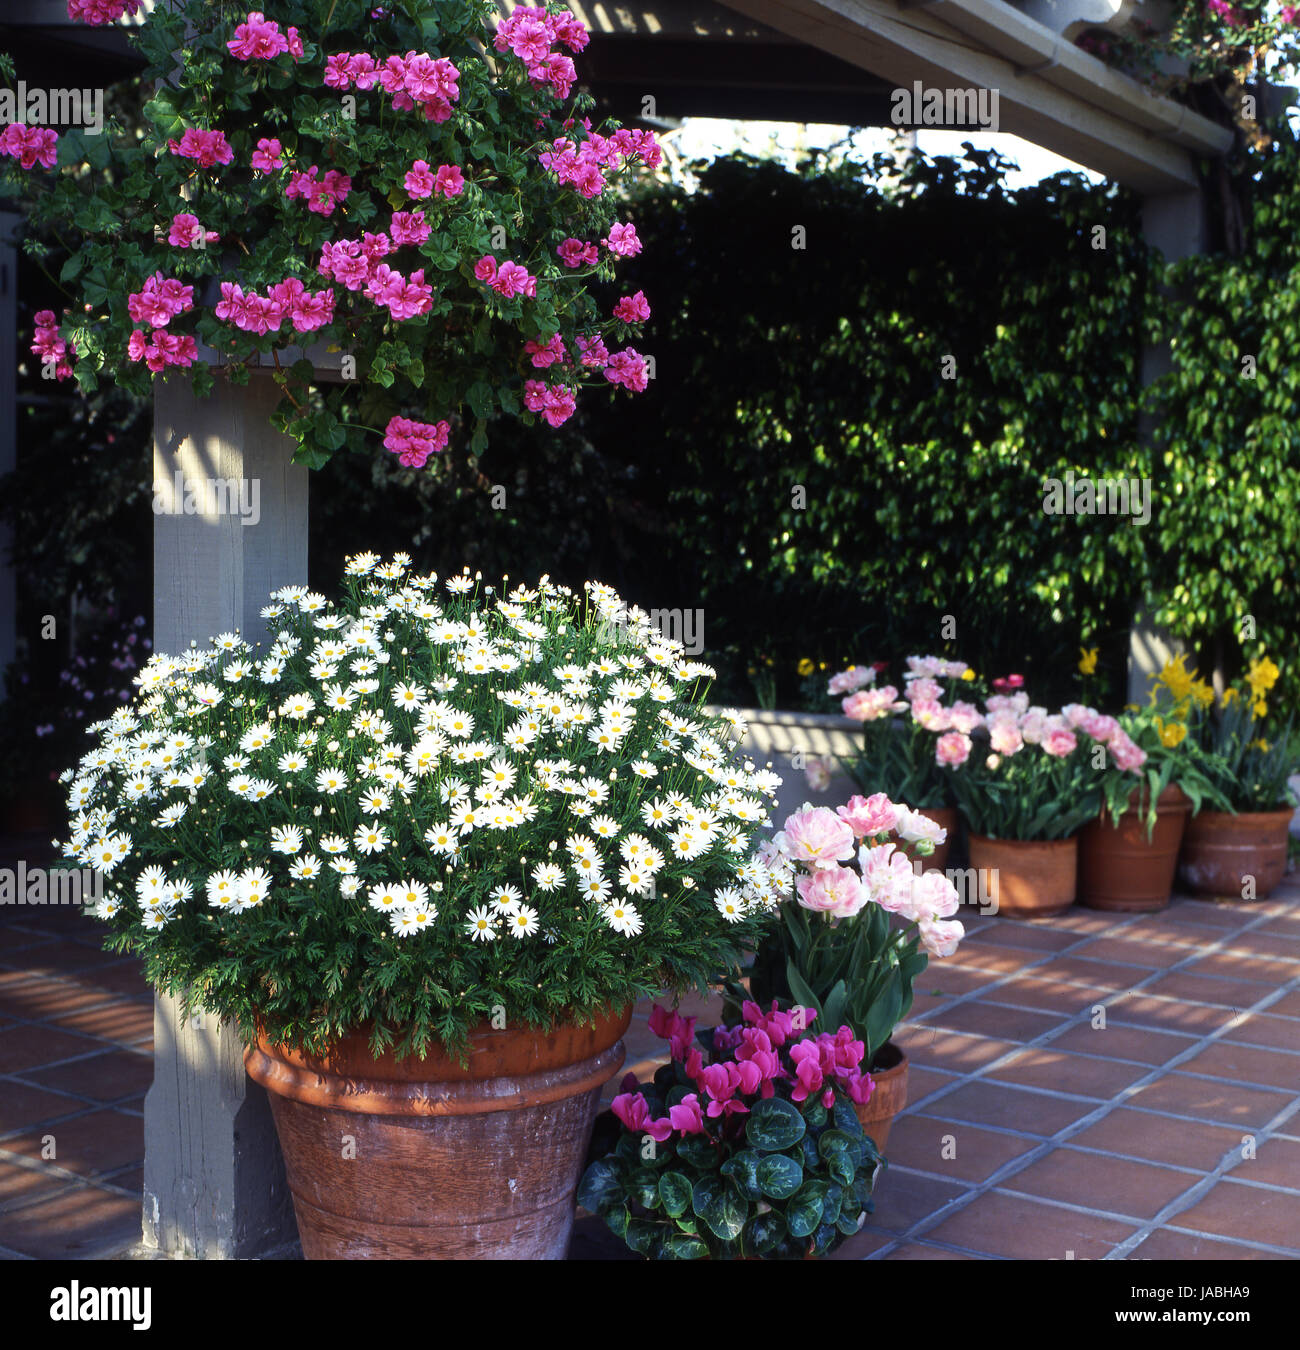 Small courtyard garden with colourful pots of daisies, cyclamen, tulips and pelargoniums, Australia - Stock Image